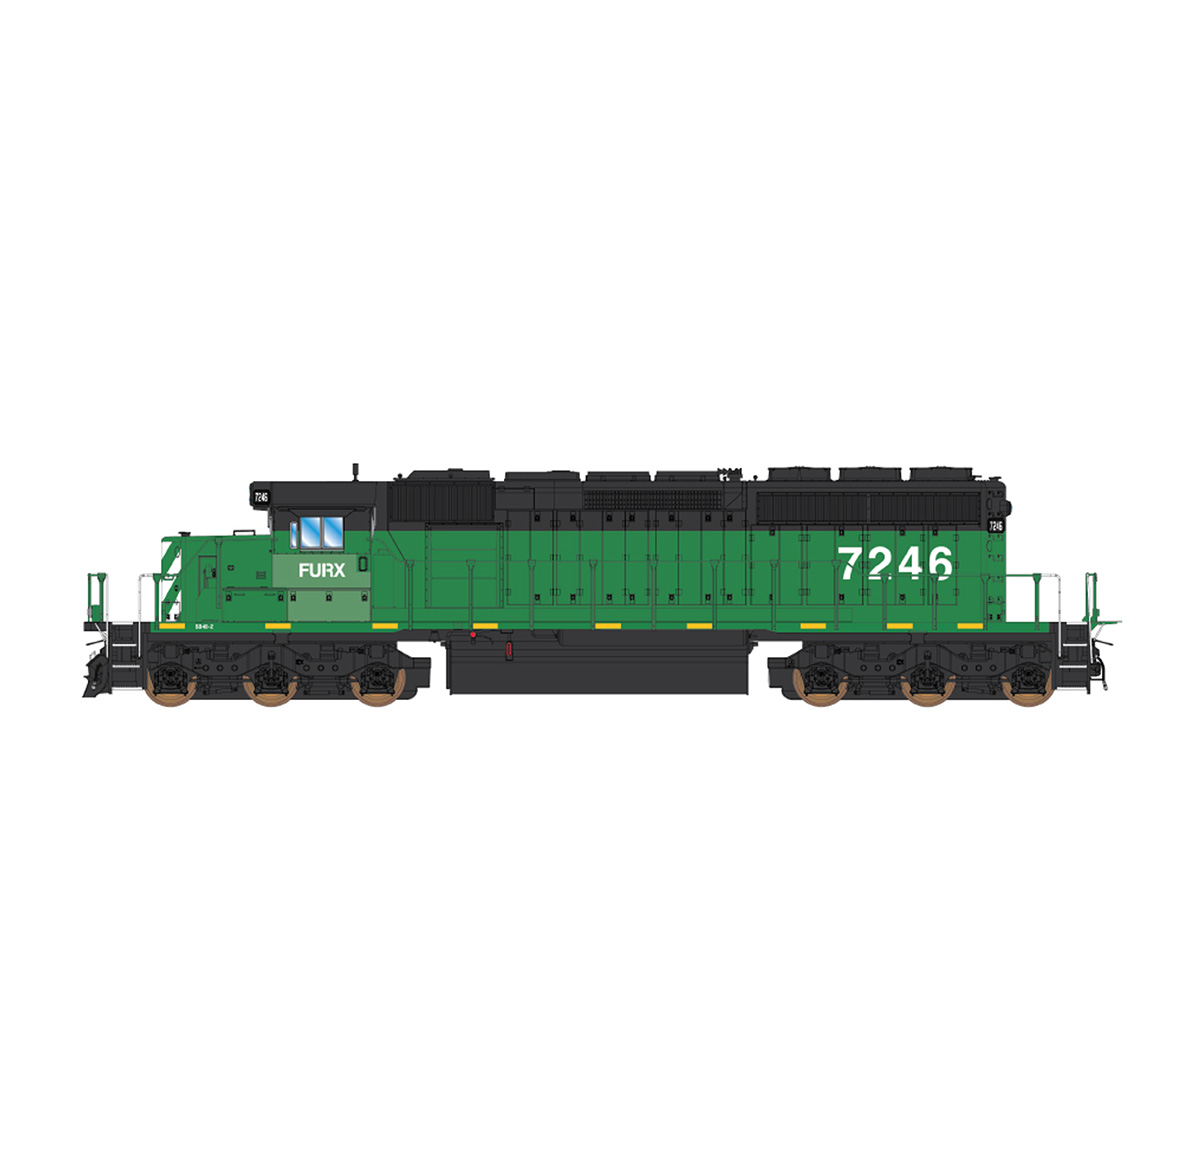 InterMountain 69387-06 N Scale EMD SD40-2 DC, FURX Ex-BN Patch #8126